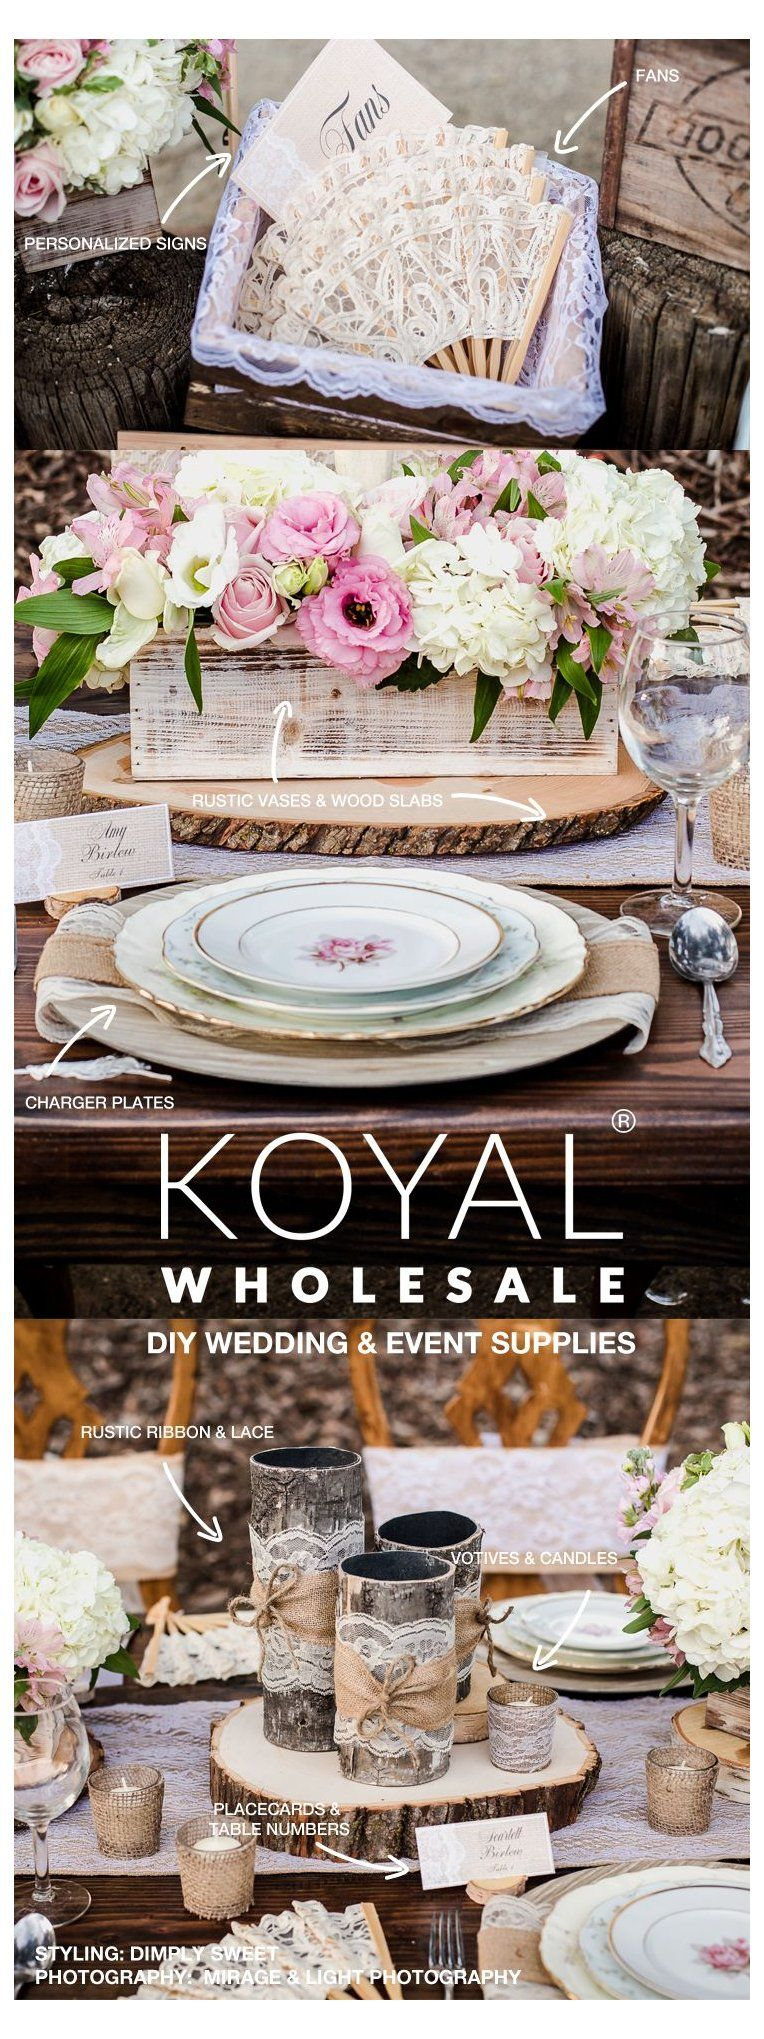 Stylish Wholesale Wedding Supplies Party Supplies Koyal Party Supplies Wholesale Wedding Favo 2020 Kendin Yap Dugun Dugun Masa Susleri Dugun Dekorasyonlari